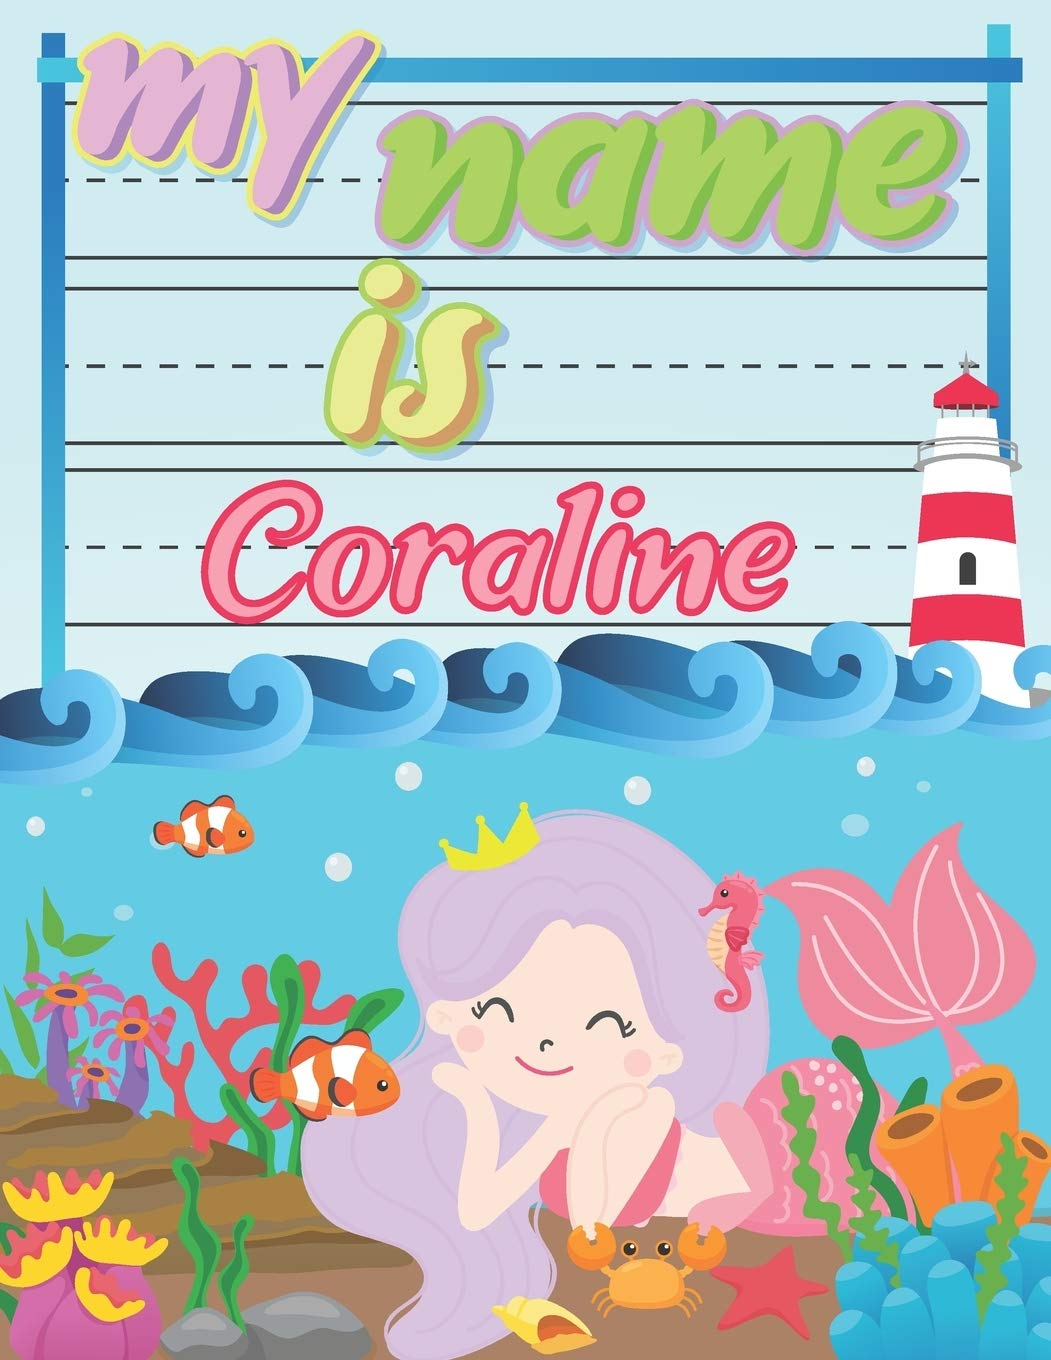 My Name Is Coraline Personalized Primary Tracing Book Learning How To Write Their Name Practice Paper Designed For Kids In Preschool And Kindergarten Publishing Babanana 9781688320093 Amazon Com Books